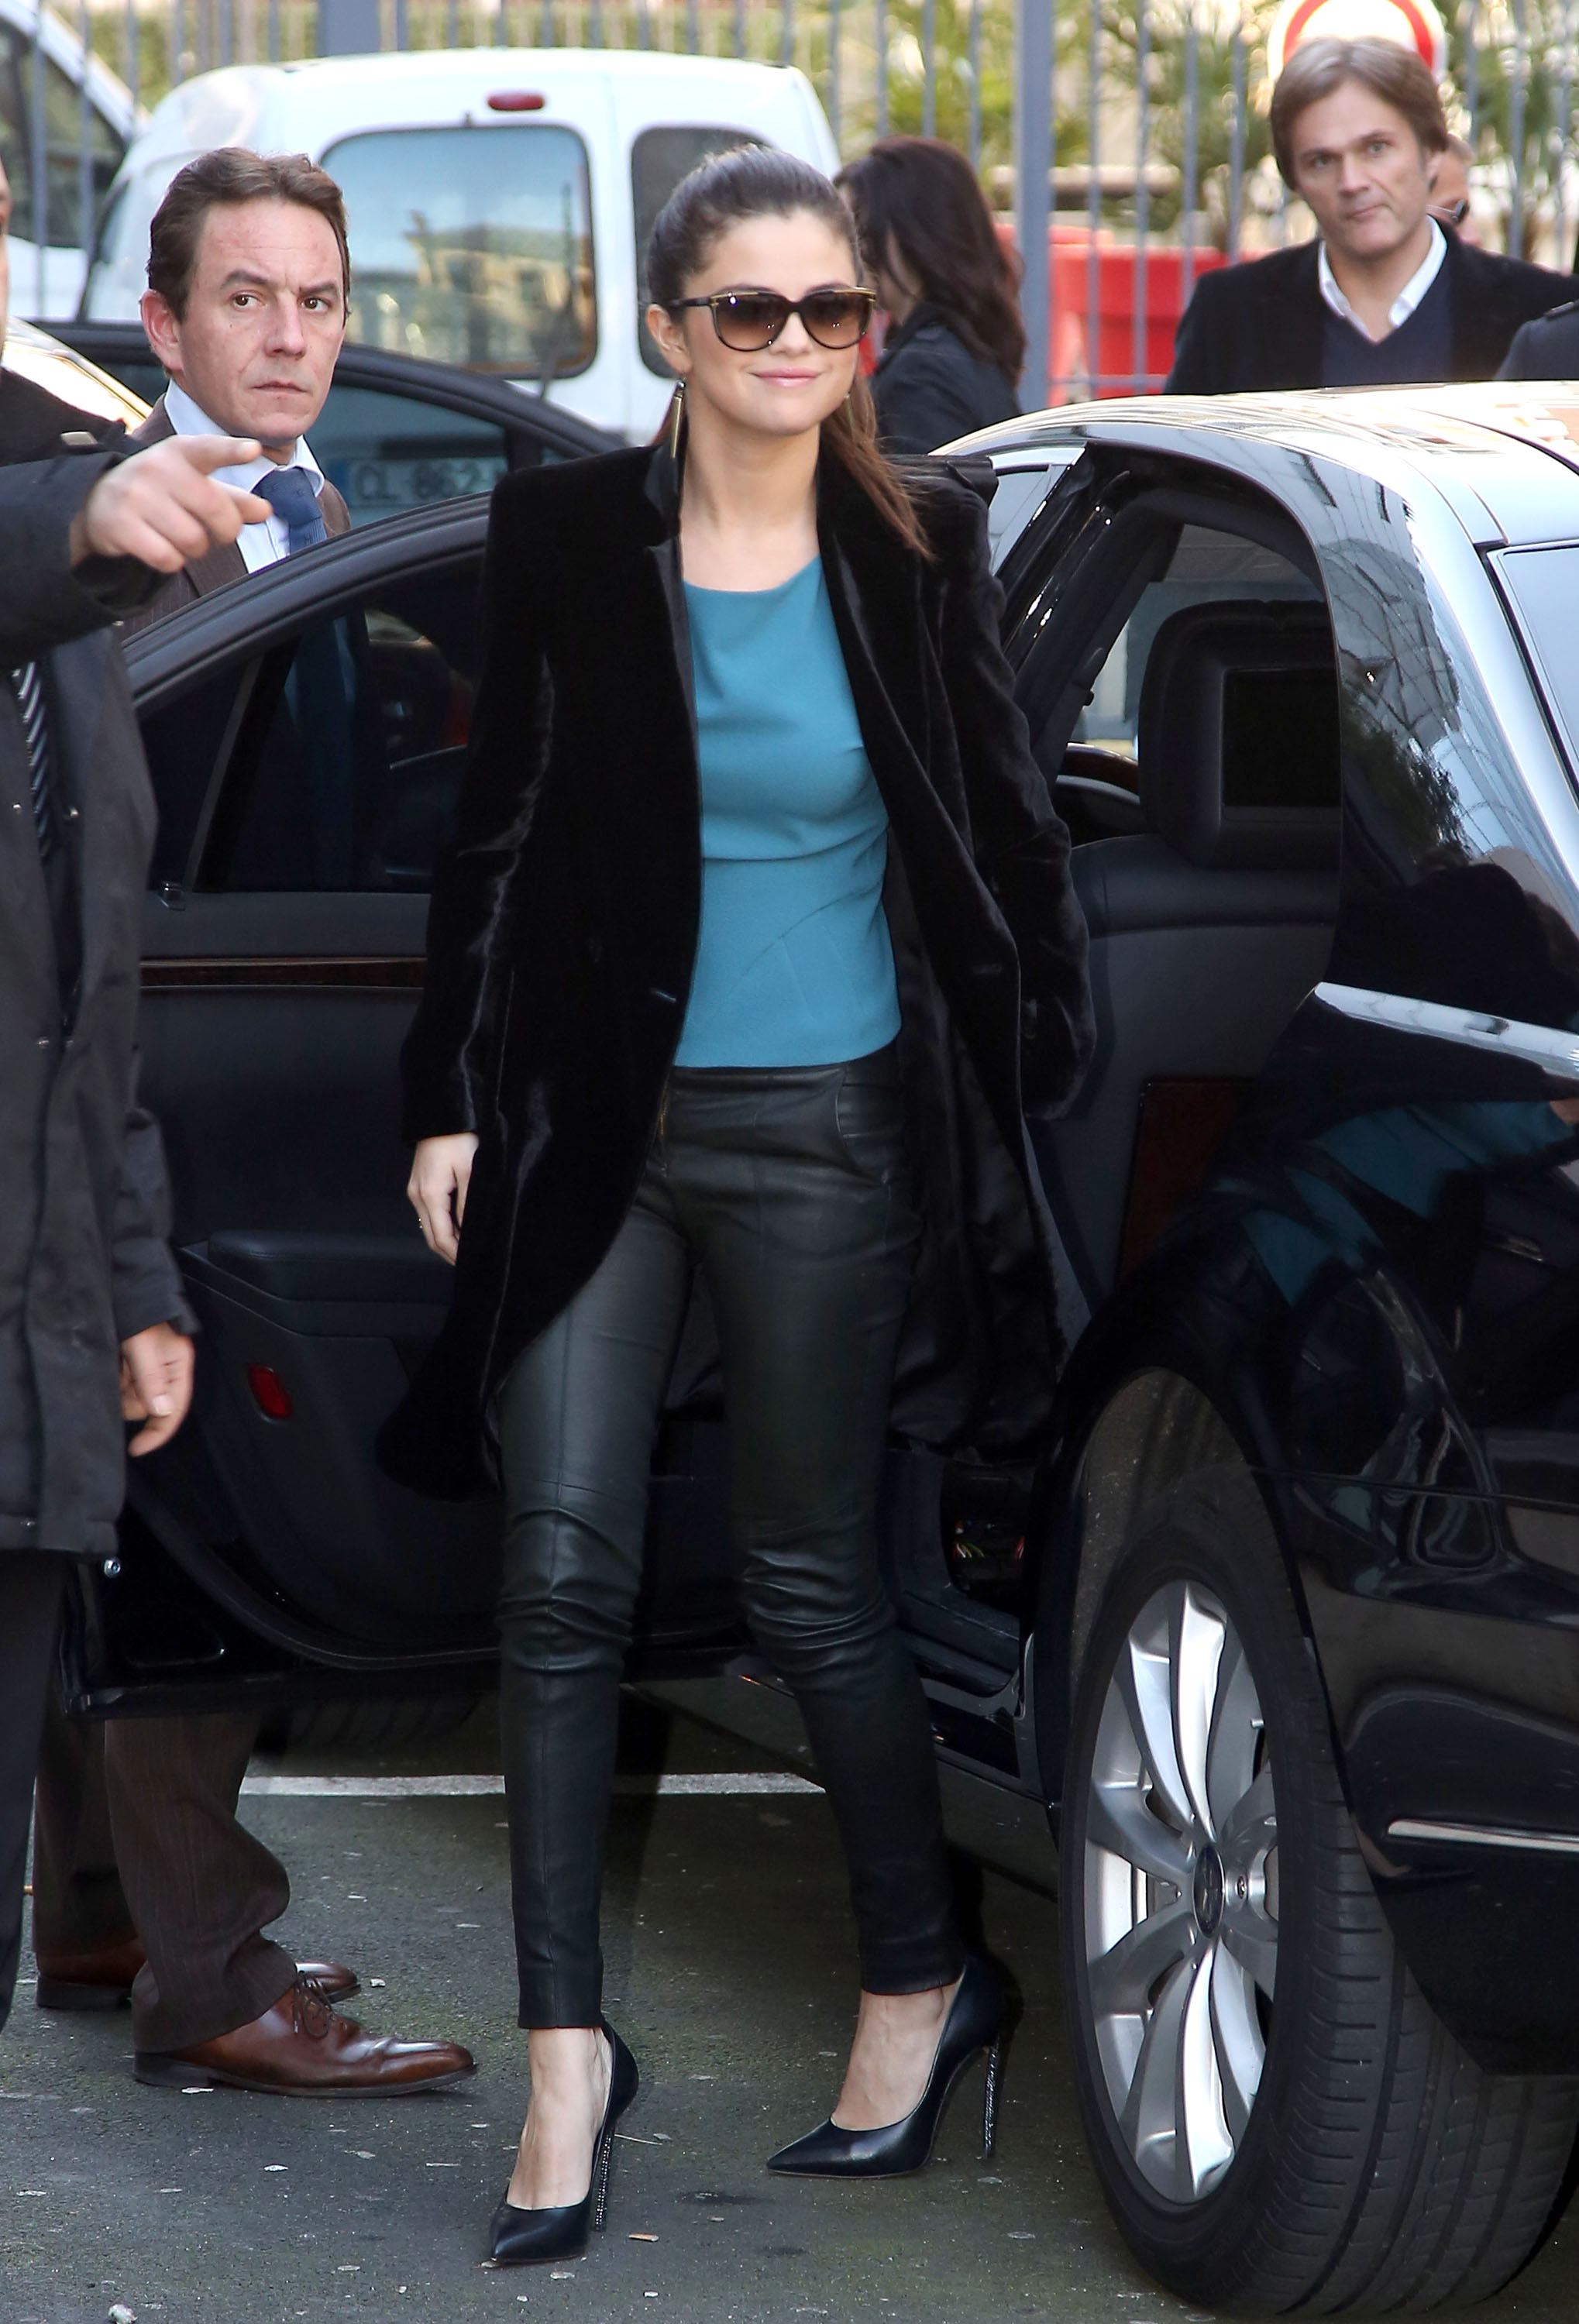 While making her rounds for press, Selena Gomez looked polished in black leather pants, a blue top, and a black velvet blazer.